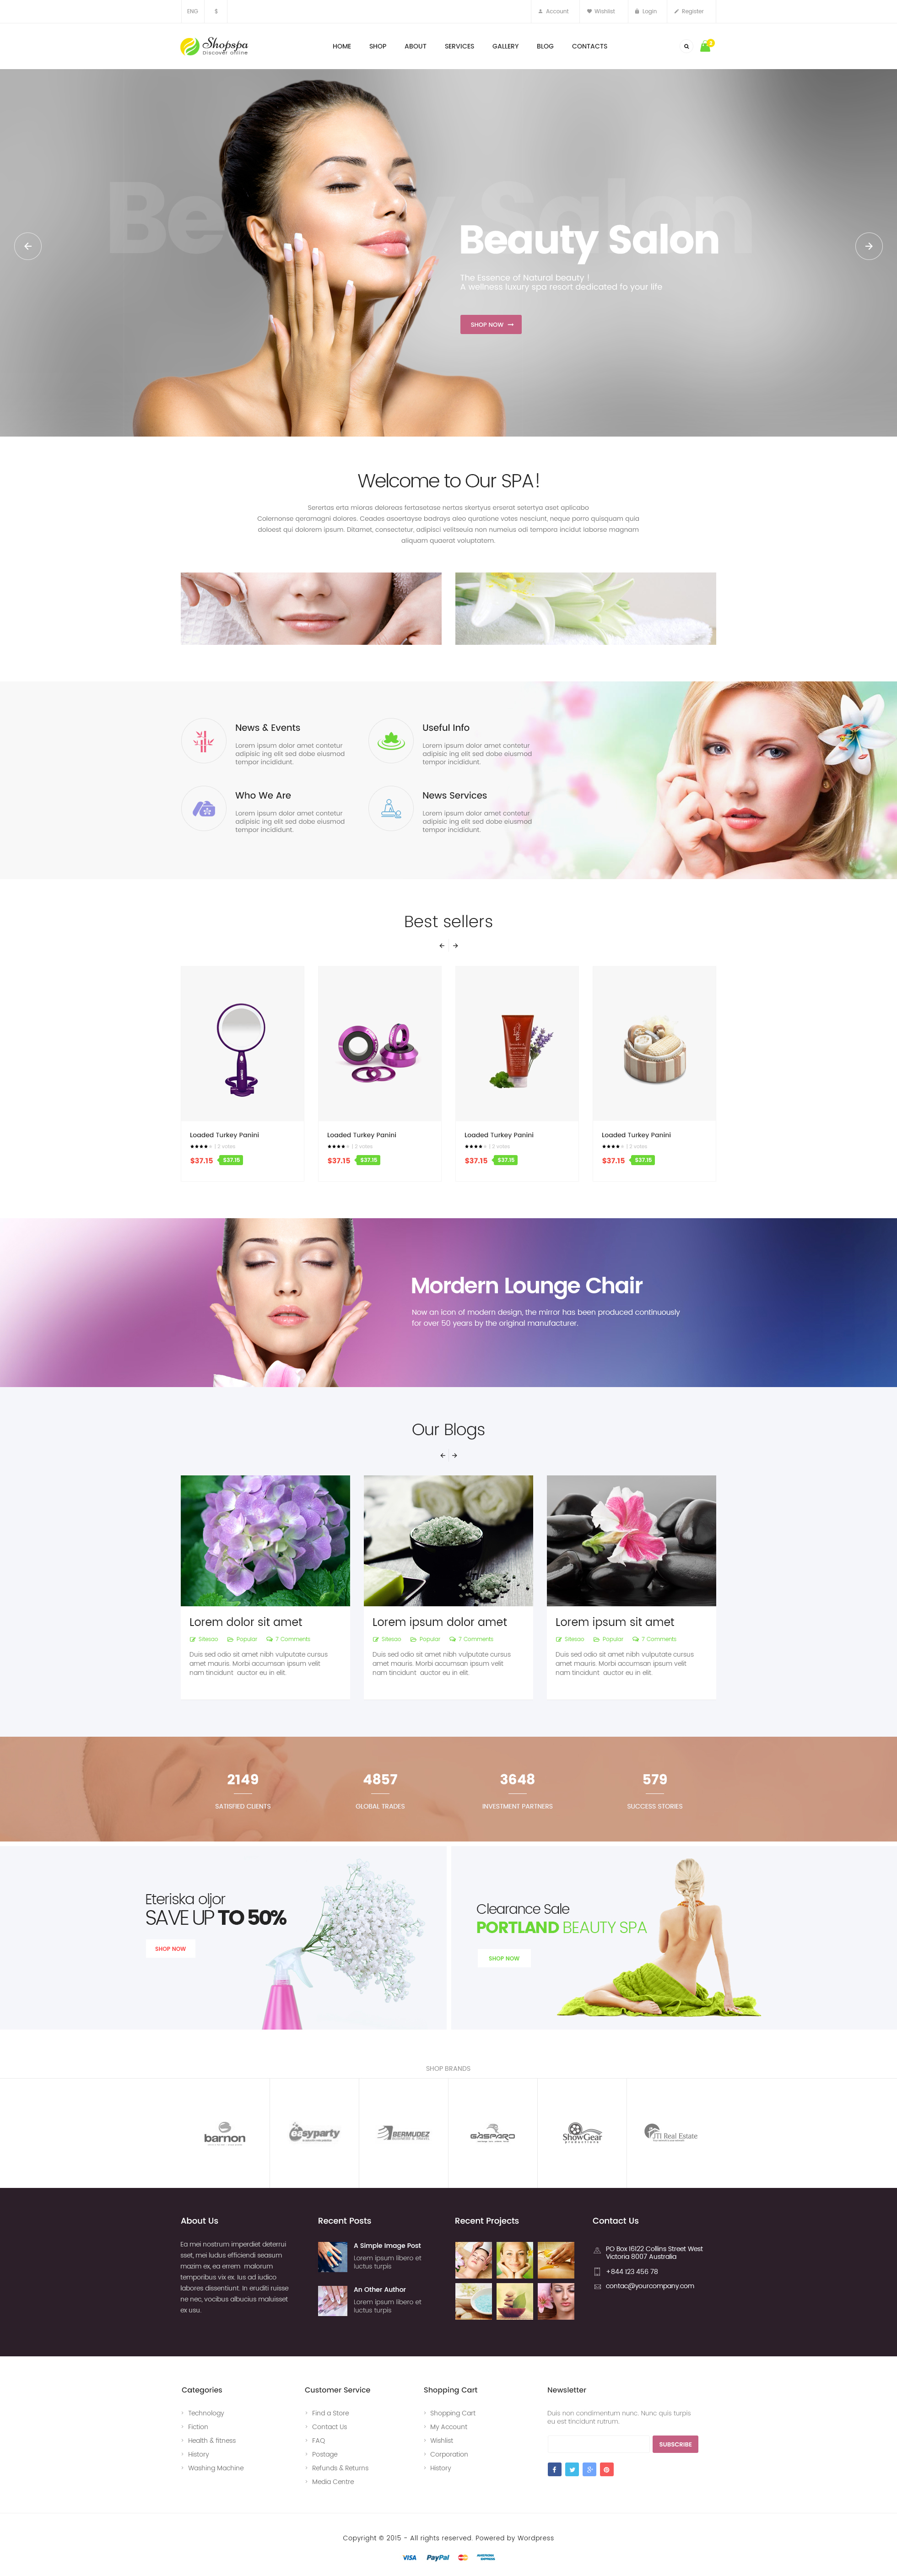 pav shopspa responsive opencart theme for spa beauty salon download zip template free free. Black Bedroom Furniture Sets. Home Design Ideas